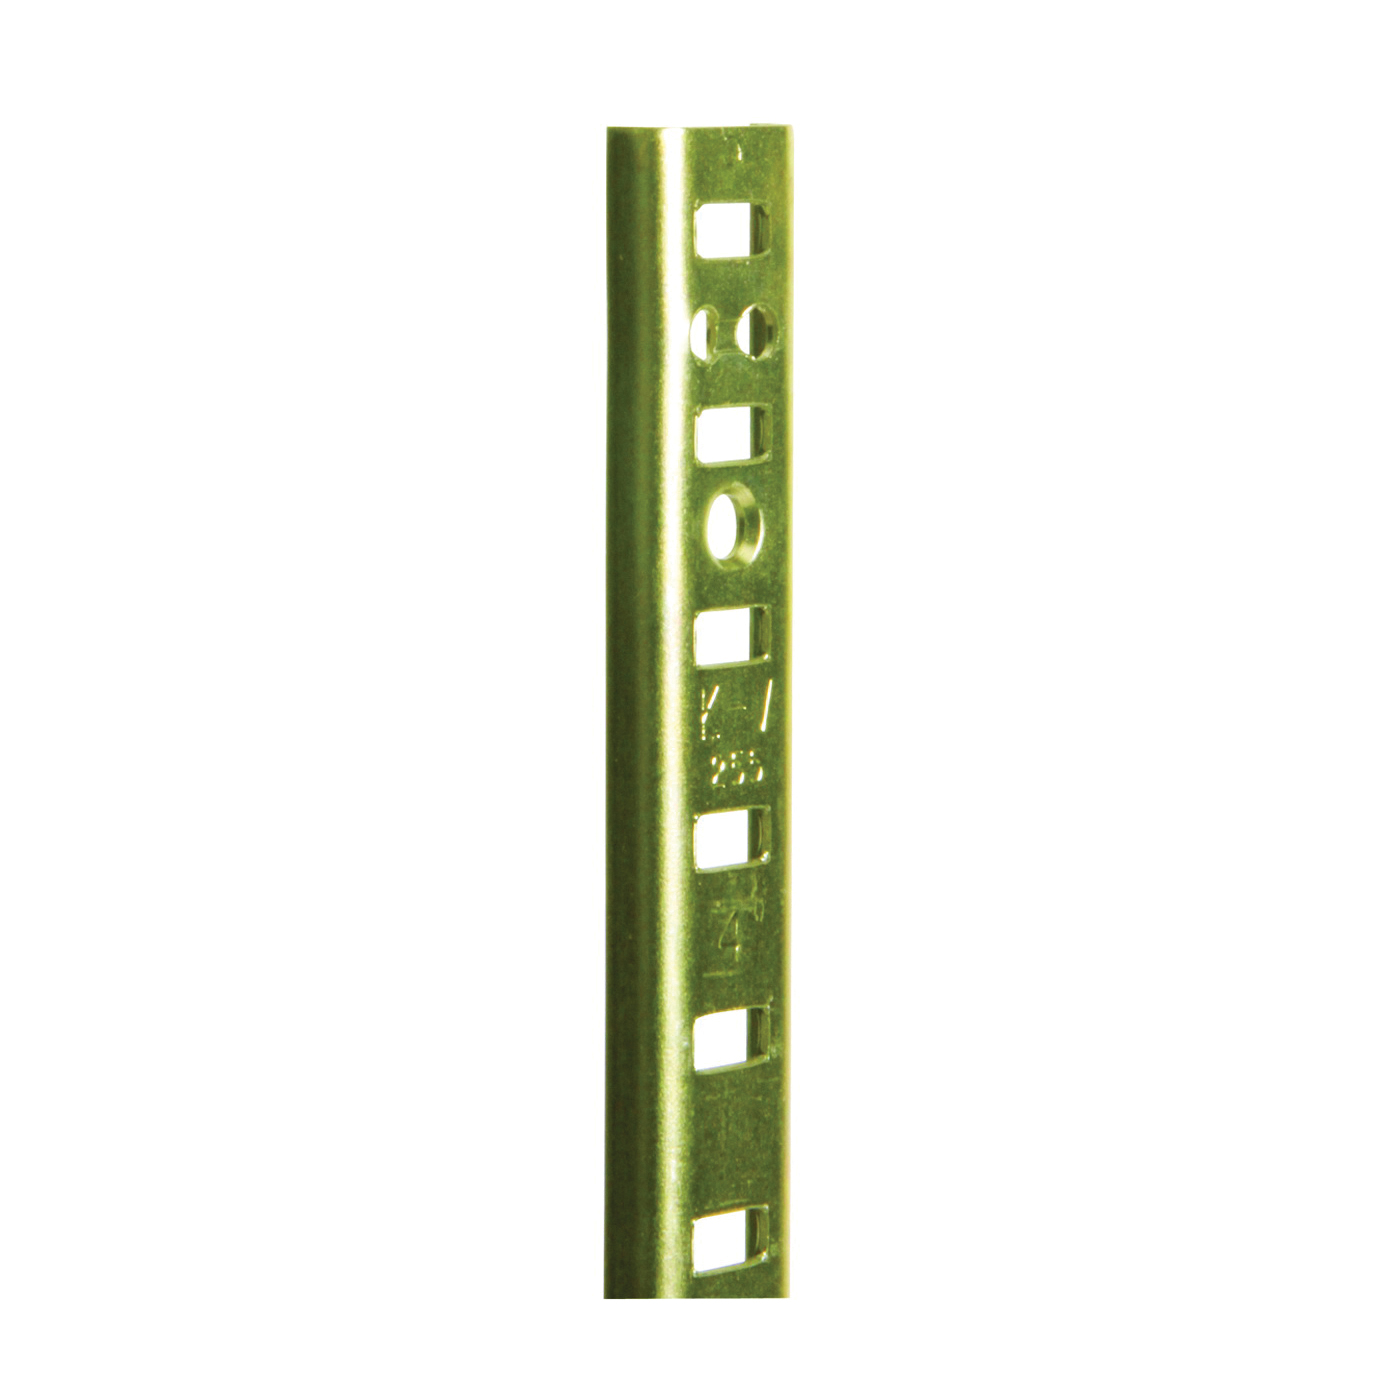 Picture of Knape & Vogt 255 Series PK255 BR 36 Shelf Standard, 500 lb, 23 ga Thick Material, 5/8 in W, 36 in H, Steel, Brass